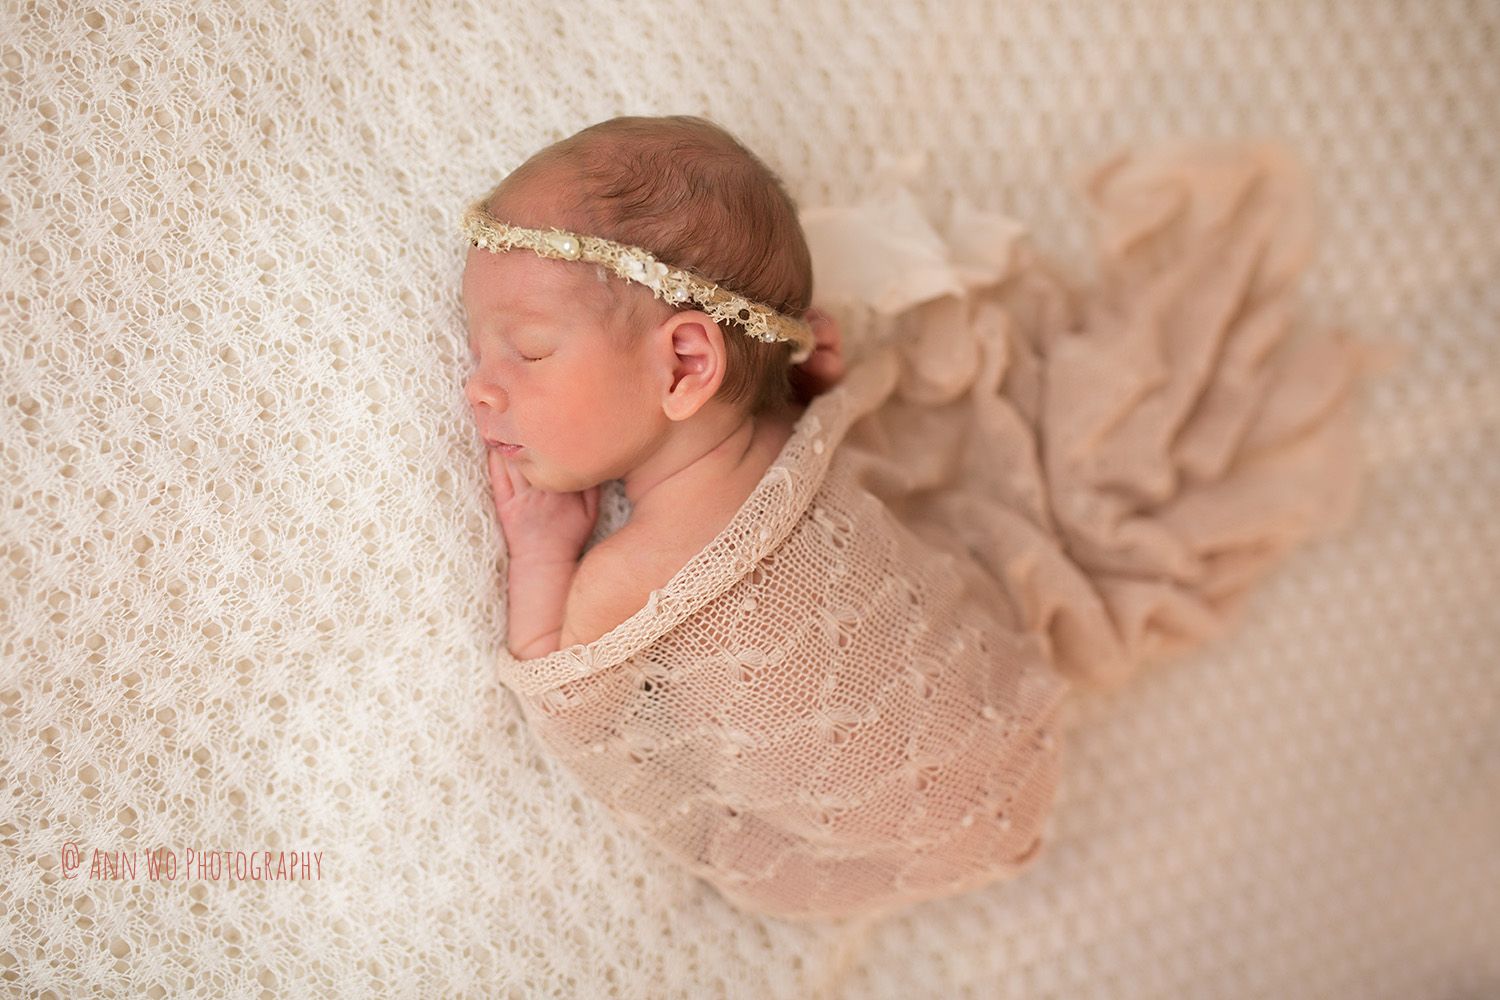 Newborn photoshoot in London lace wrap and headband